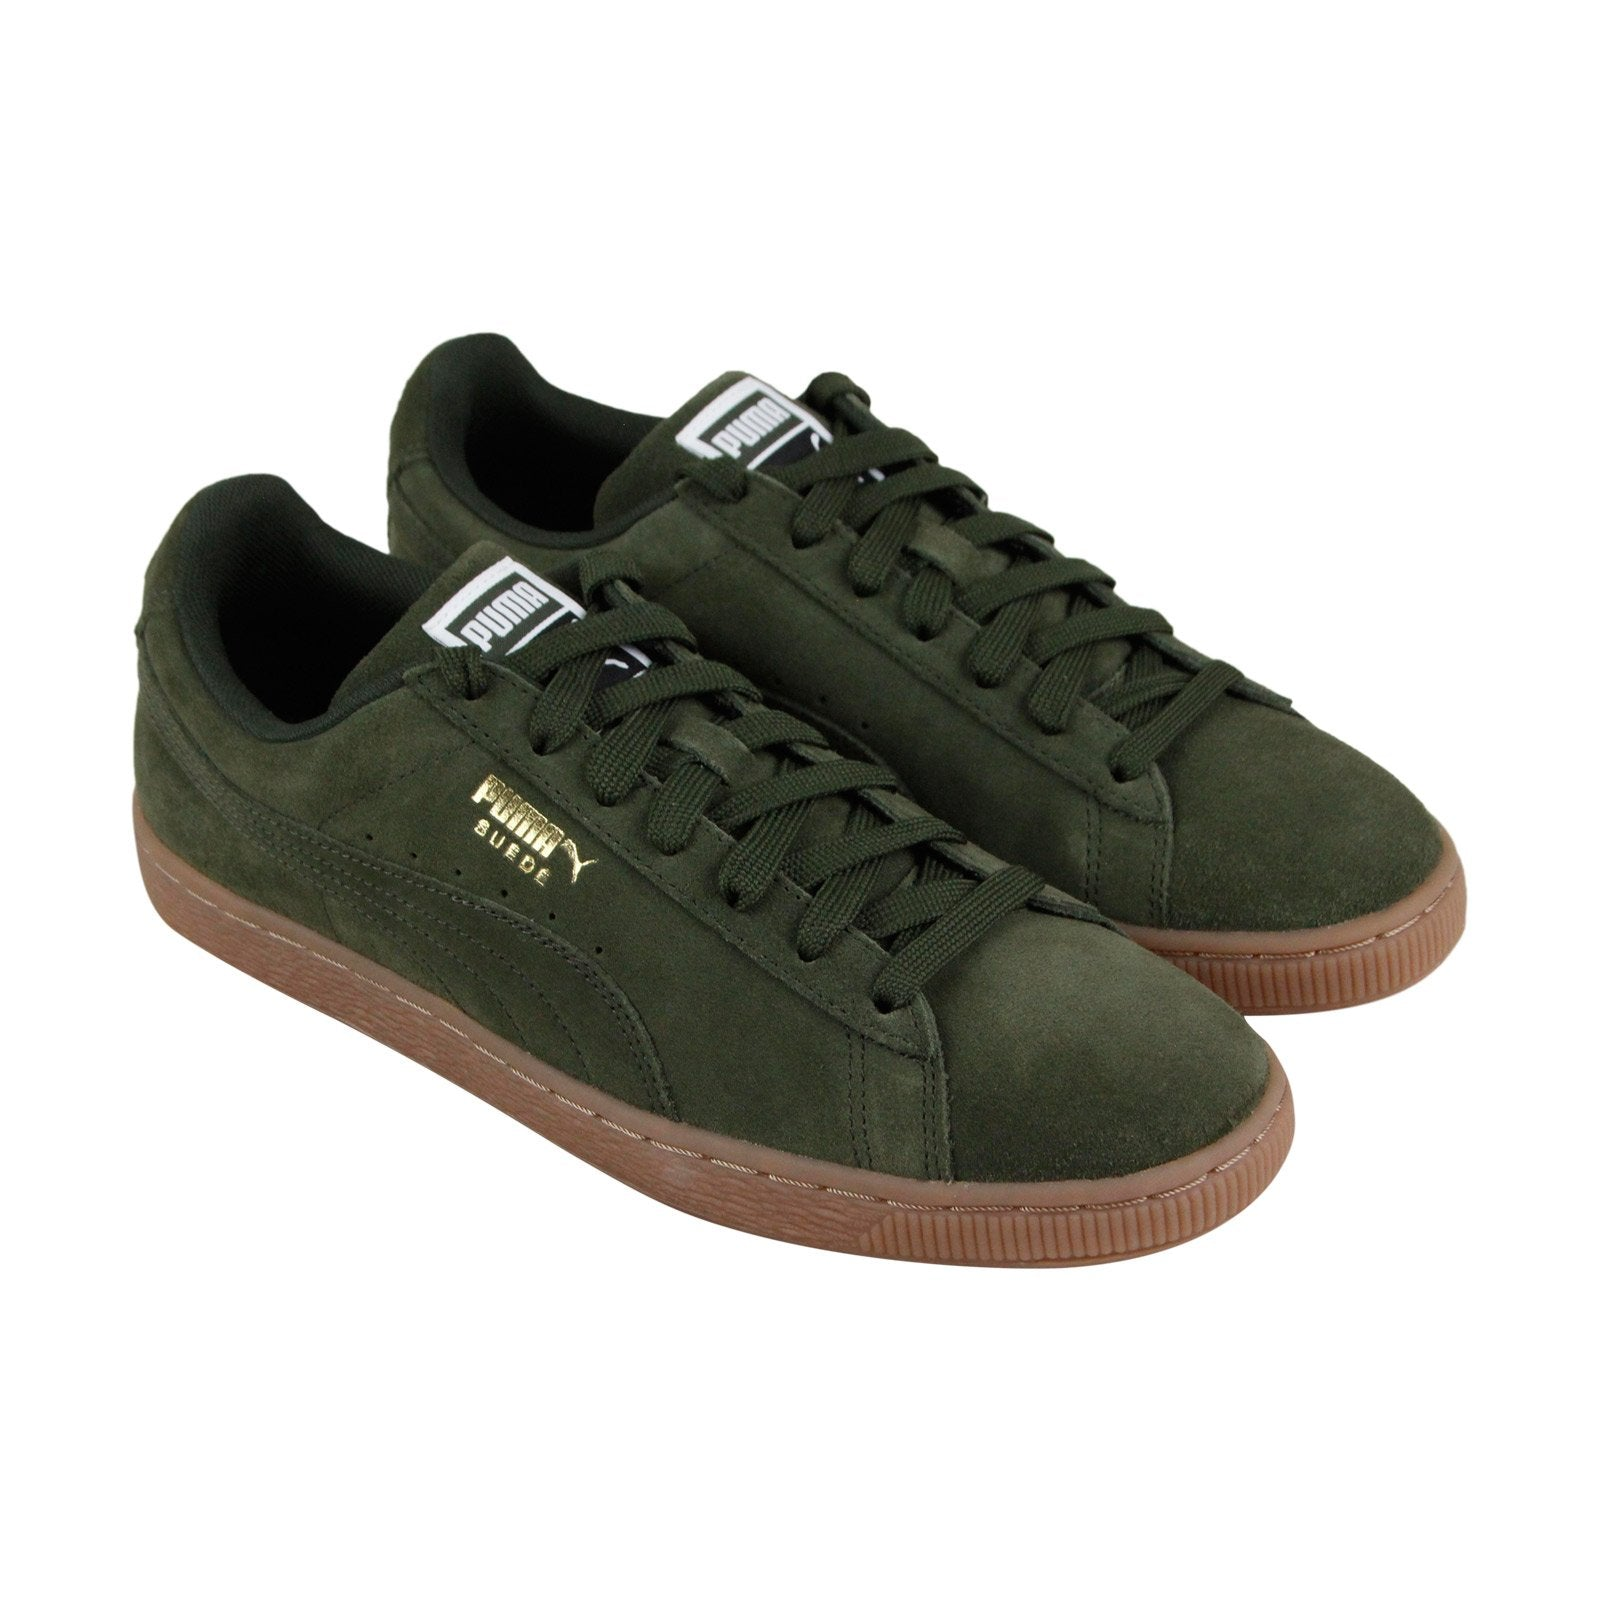 premium selection 9ddea 5c355 Puma Suede Classic Mens Green Suede Low Top Lace Up Sneakers Shoes